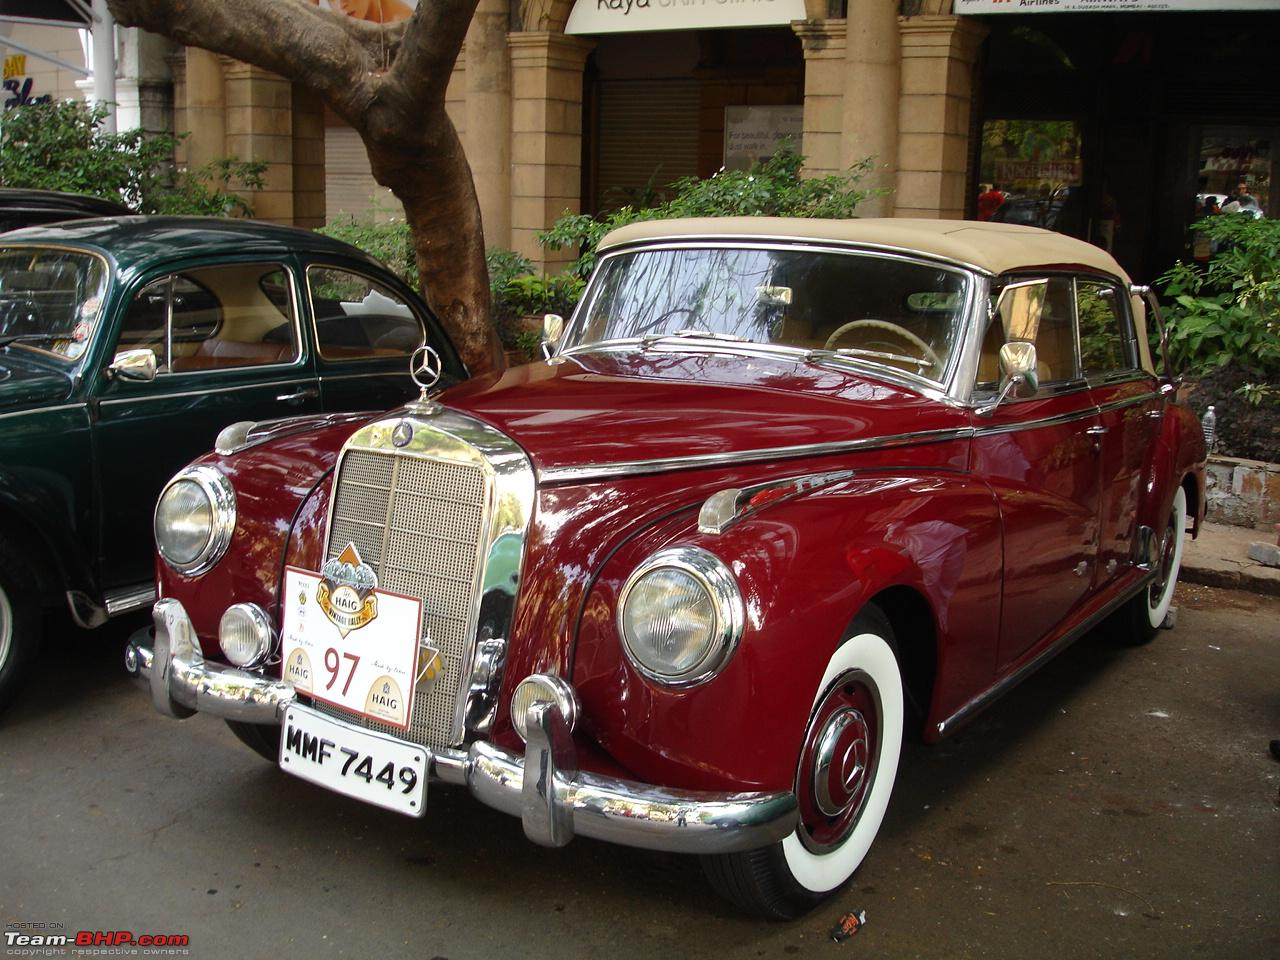 Vintage classic mercedes benz cars in india page 23 for Mercedes benz vintage cars